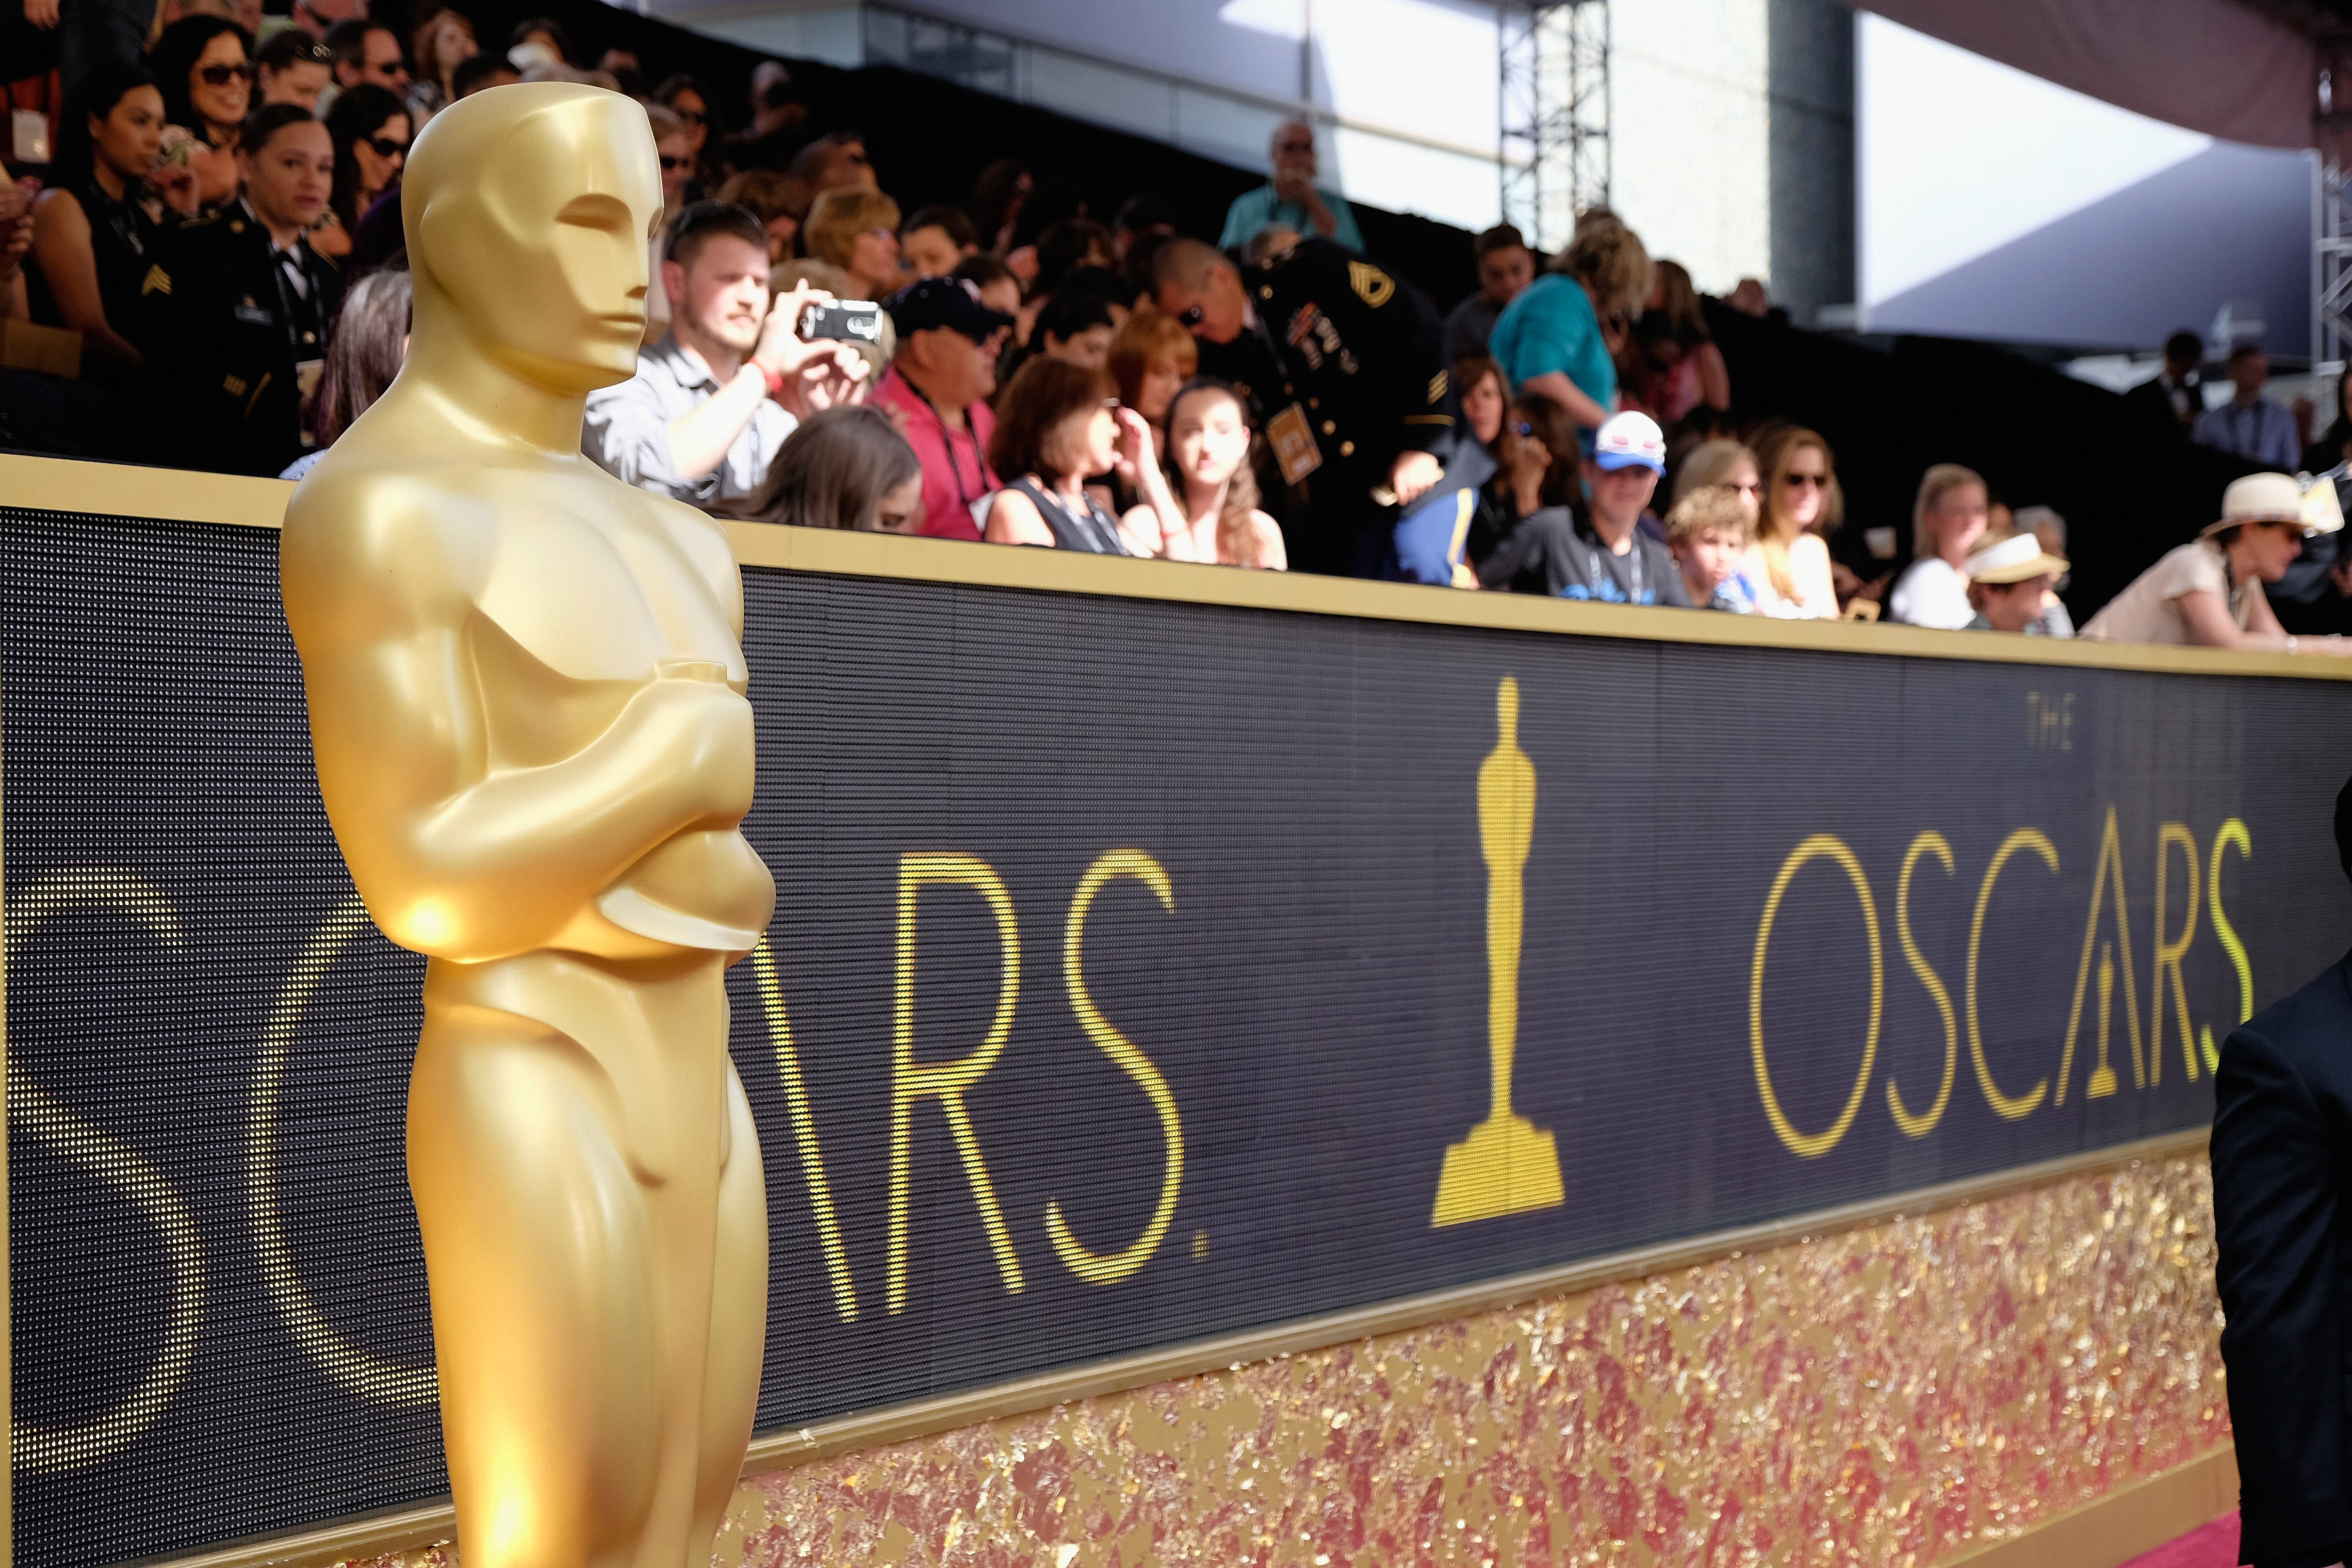 The Oscar statuette is displayed on the red carpet during the 88th Annual Academy Awards at Hollywood & Highland Center on February 28, 2016 in Hollywood, California.